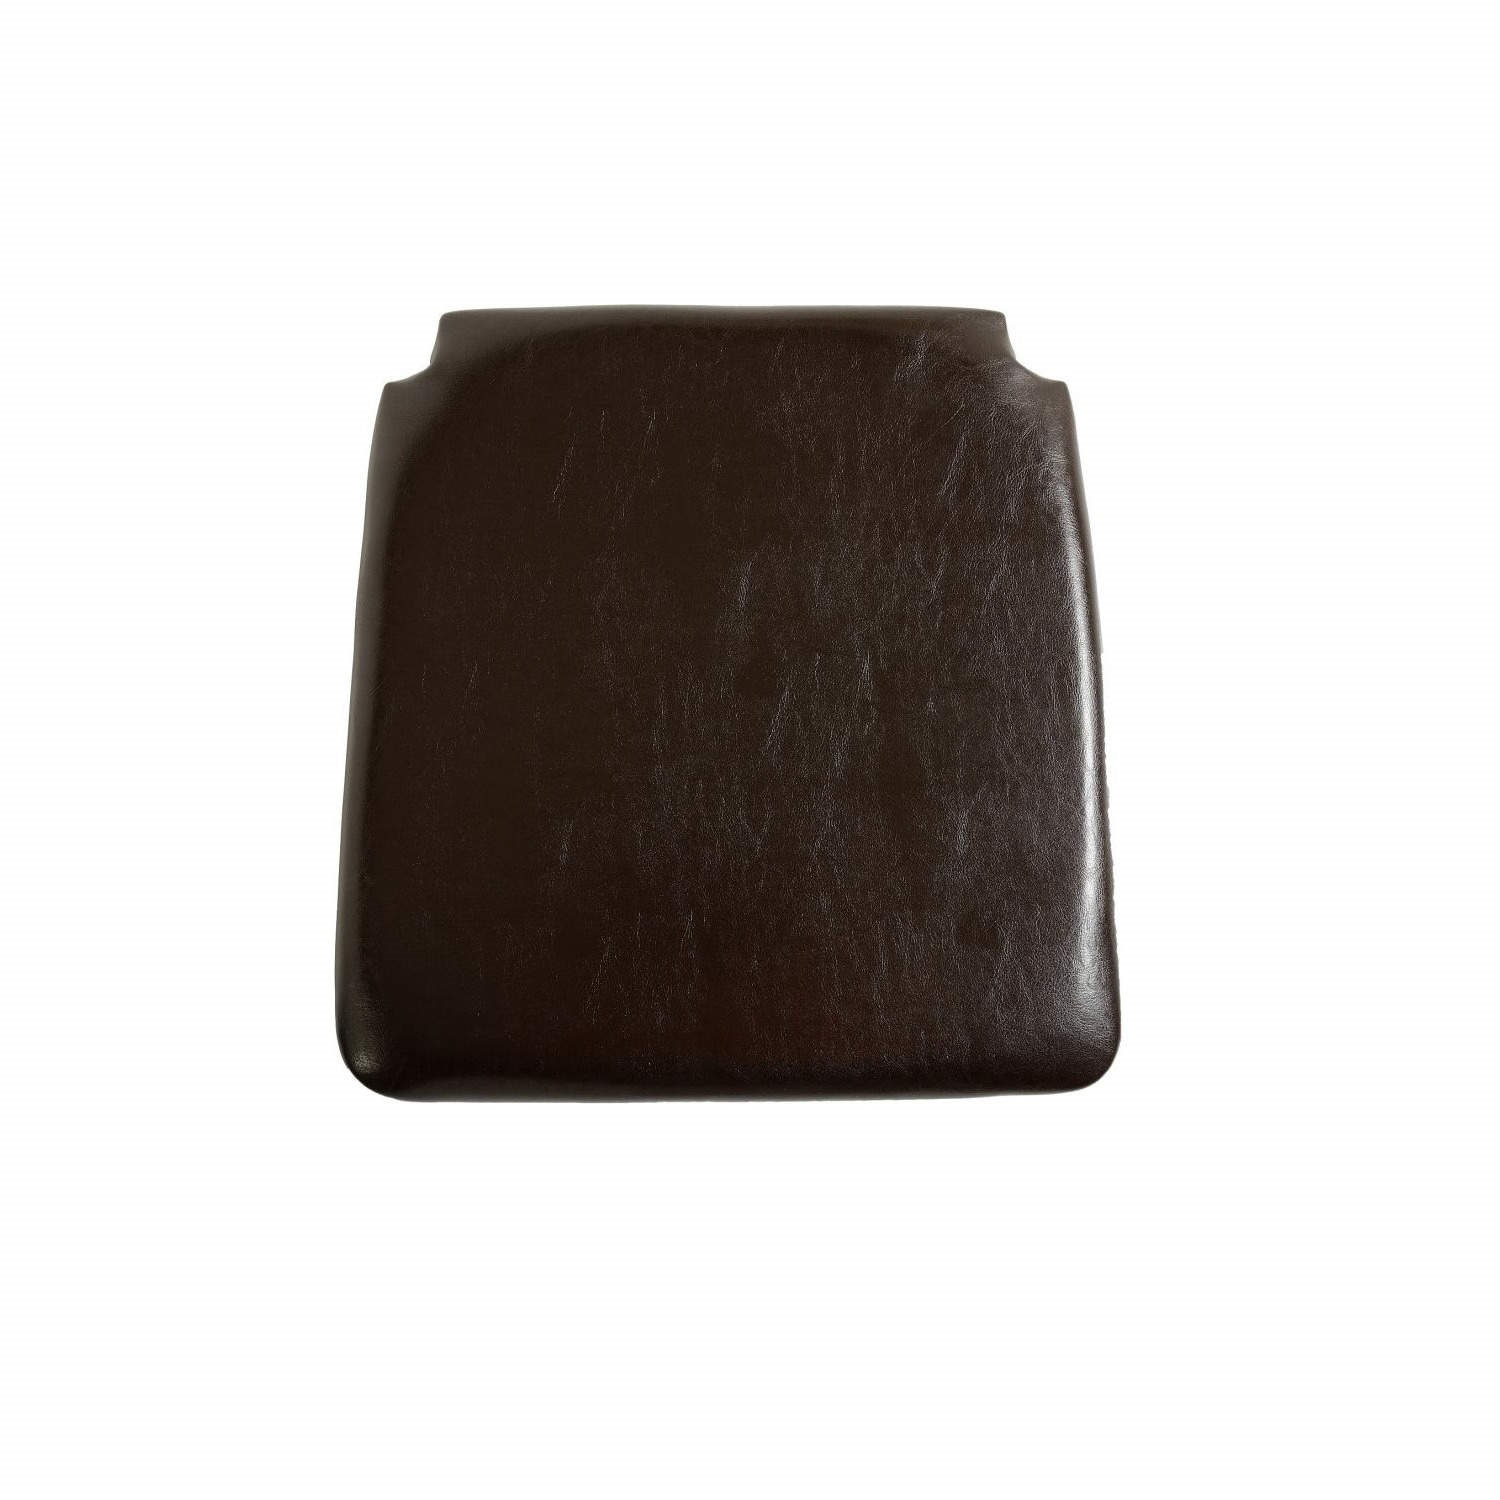 Bedside Tables Seconique Faux Leather Seat Pad - Expresso Brown PU